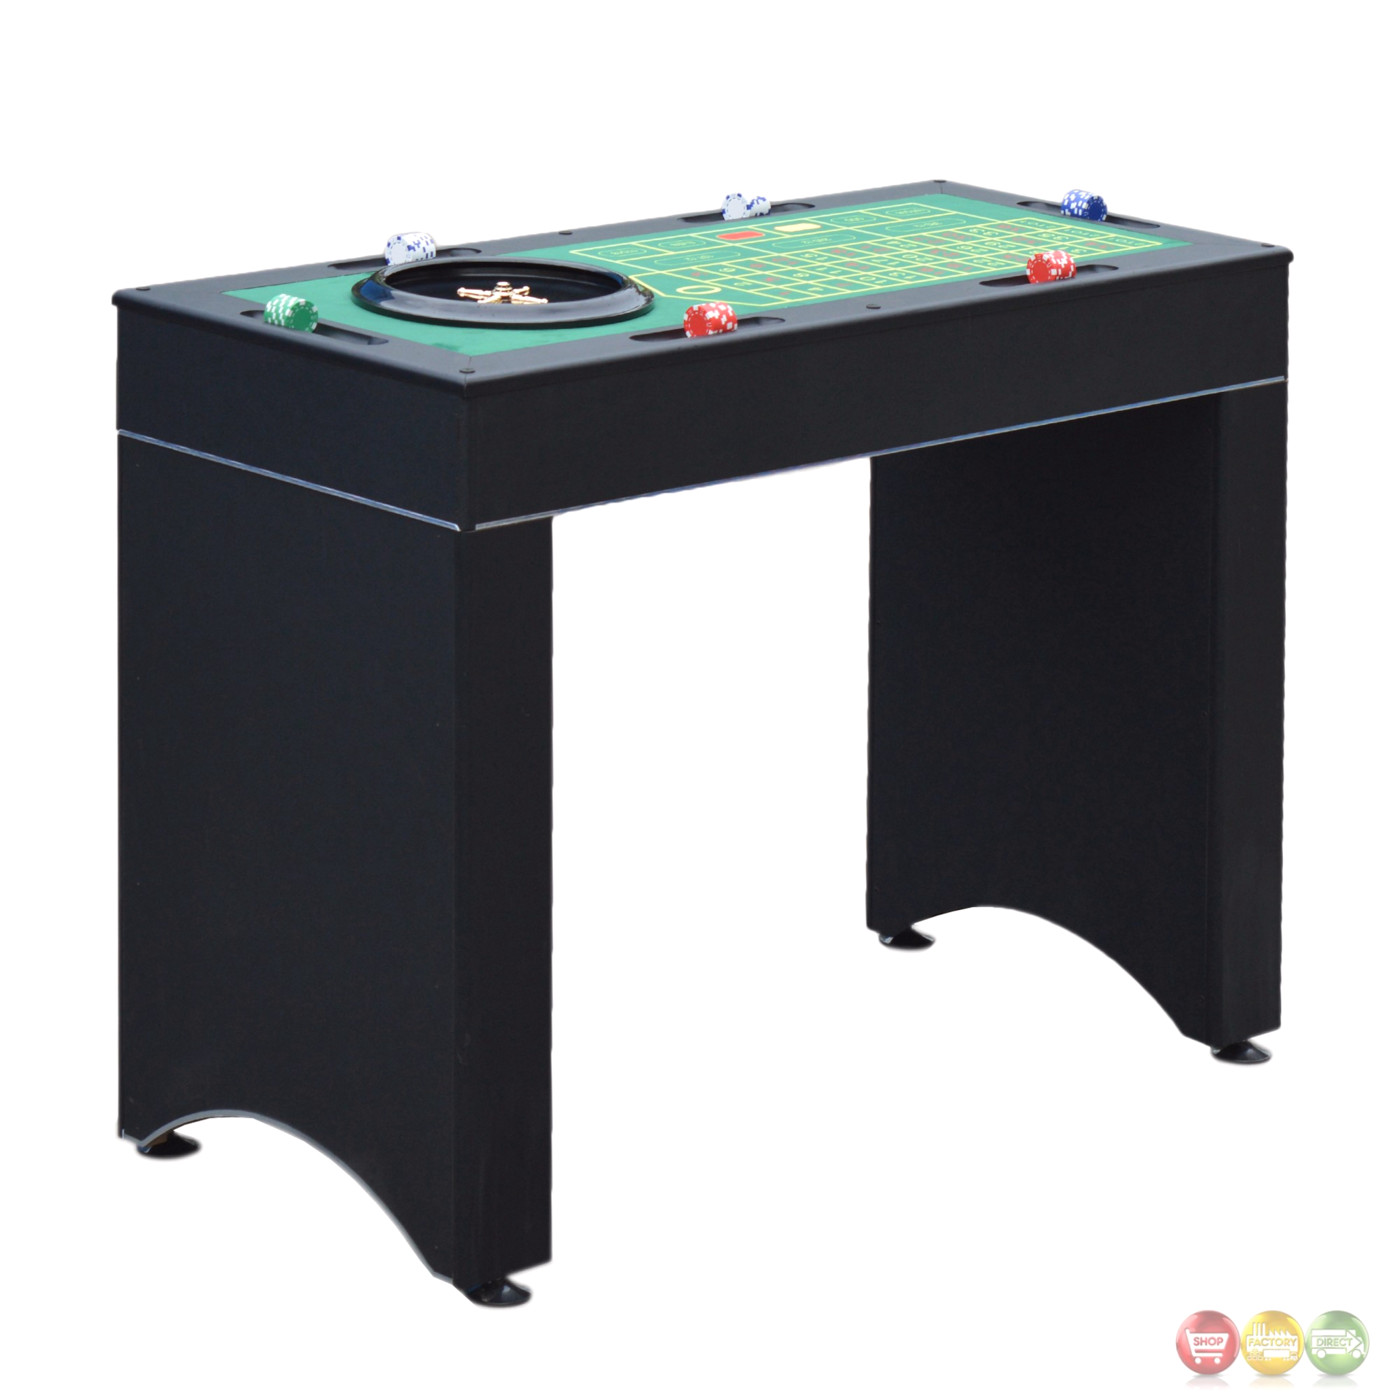 4 in 1 casino game table